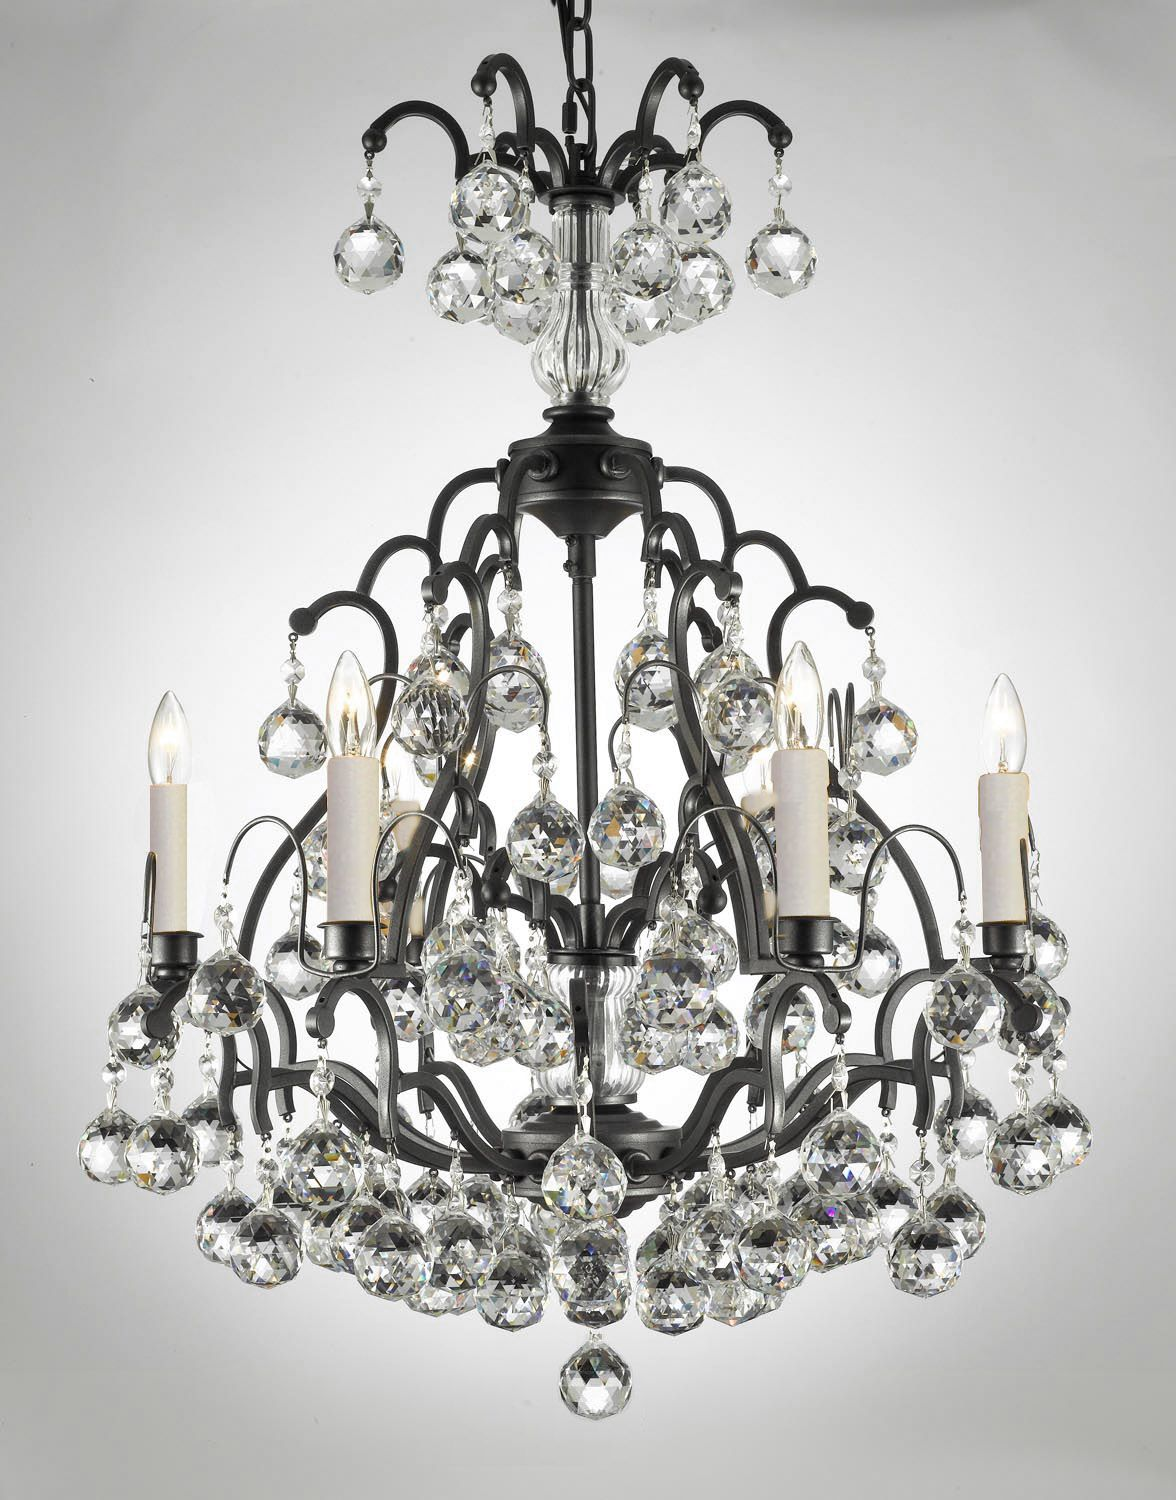 A83 B6 443 6 Wc Gallery Wrought With Crystal Chandelier Crystalscrystal Chandelierswrought Iron